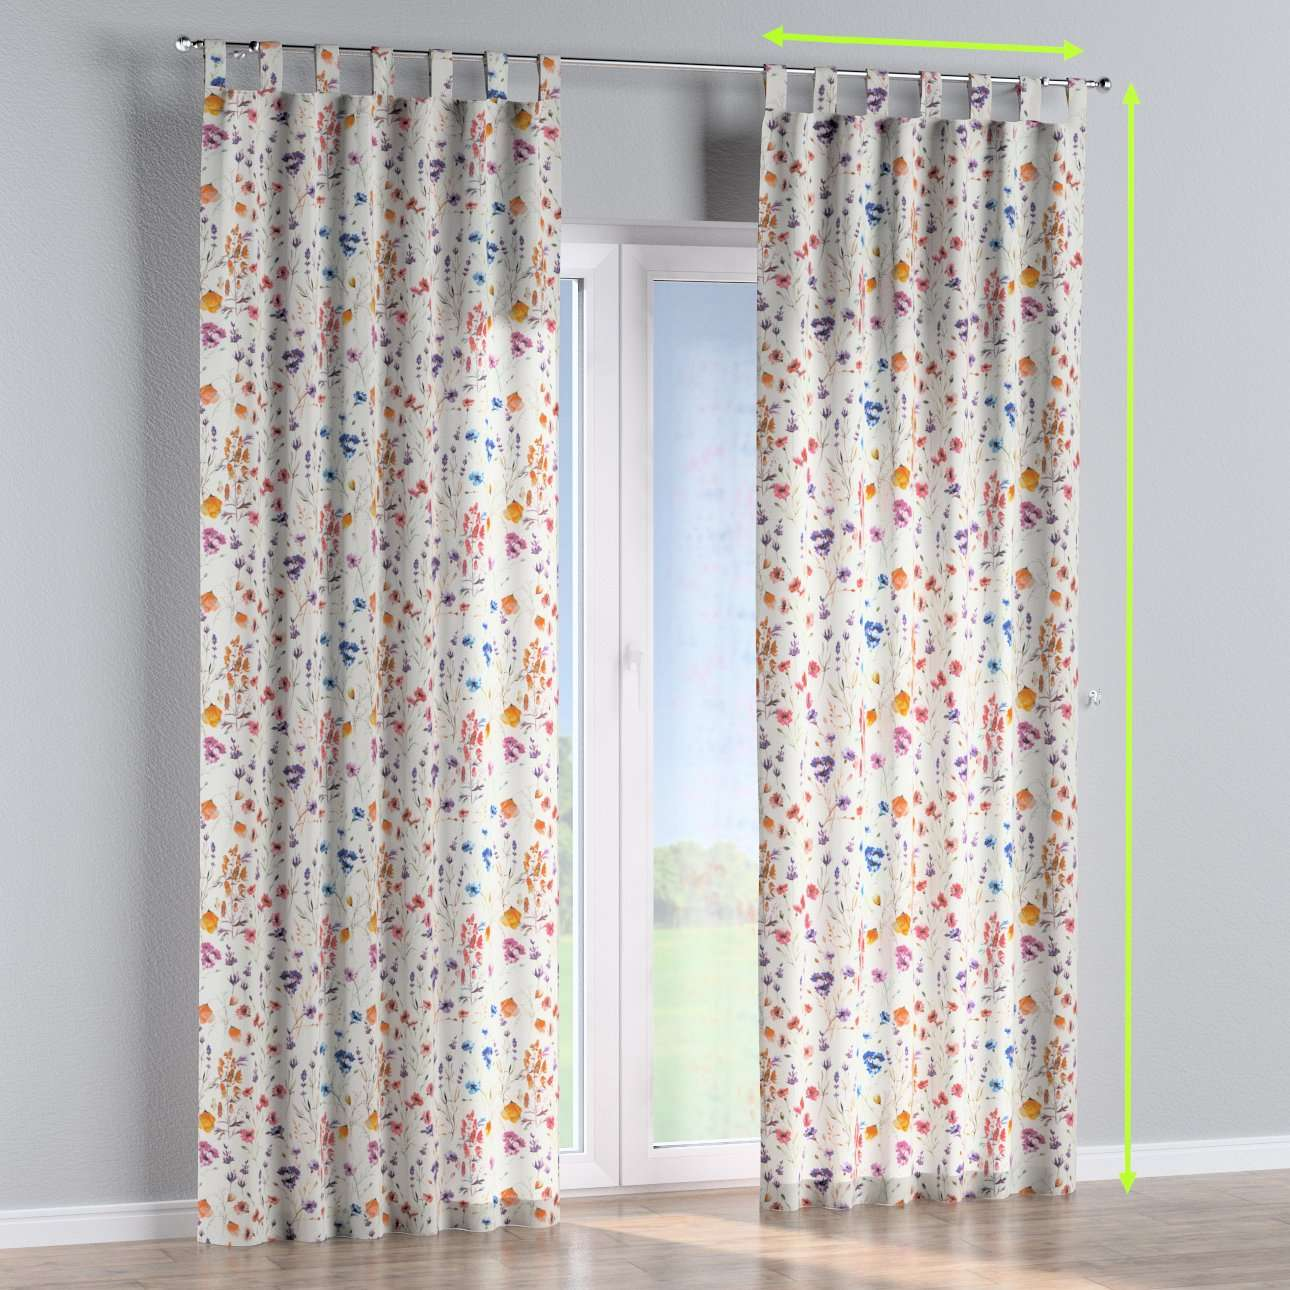 Tab top curtains in collection Flowers, fabric: 141-53